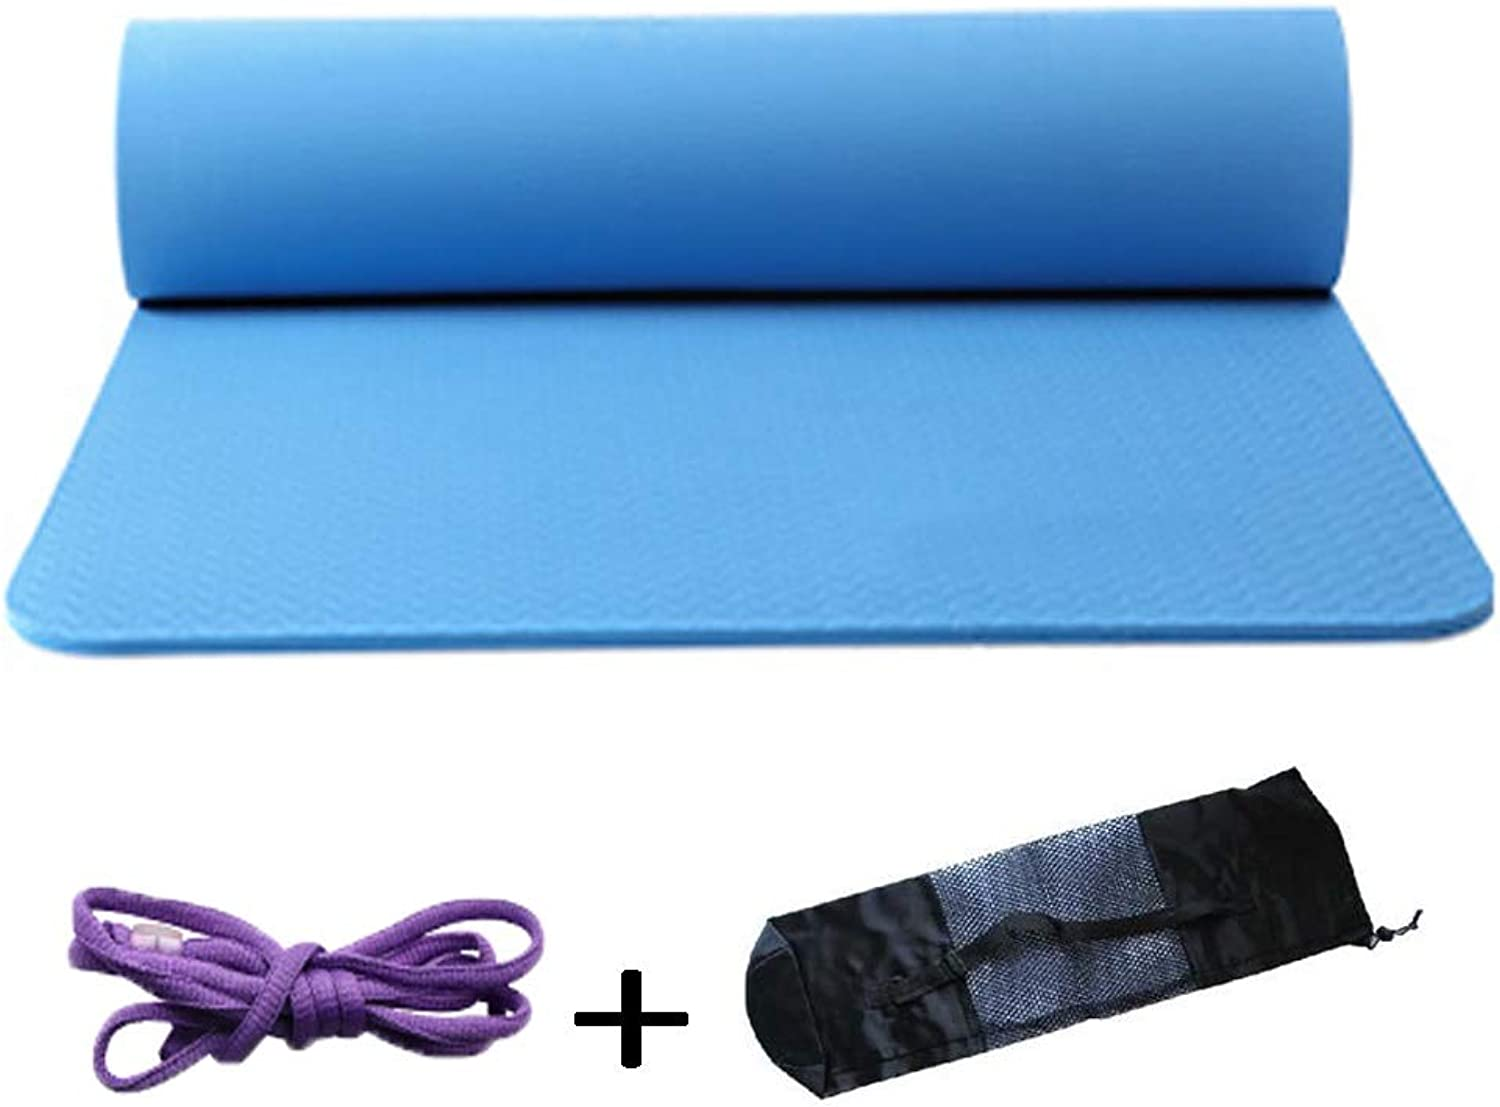 Pilates Yoga mat TPE Widened and Extended Tear Resistance Yoga Mat Beginners Male and Female Fitness Pad 6 Mm 183  61 cm 6 colors Outdoor Indoor Yoga mat (color   bluee)